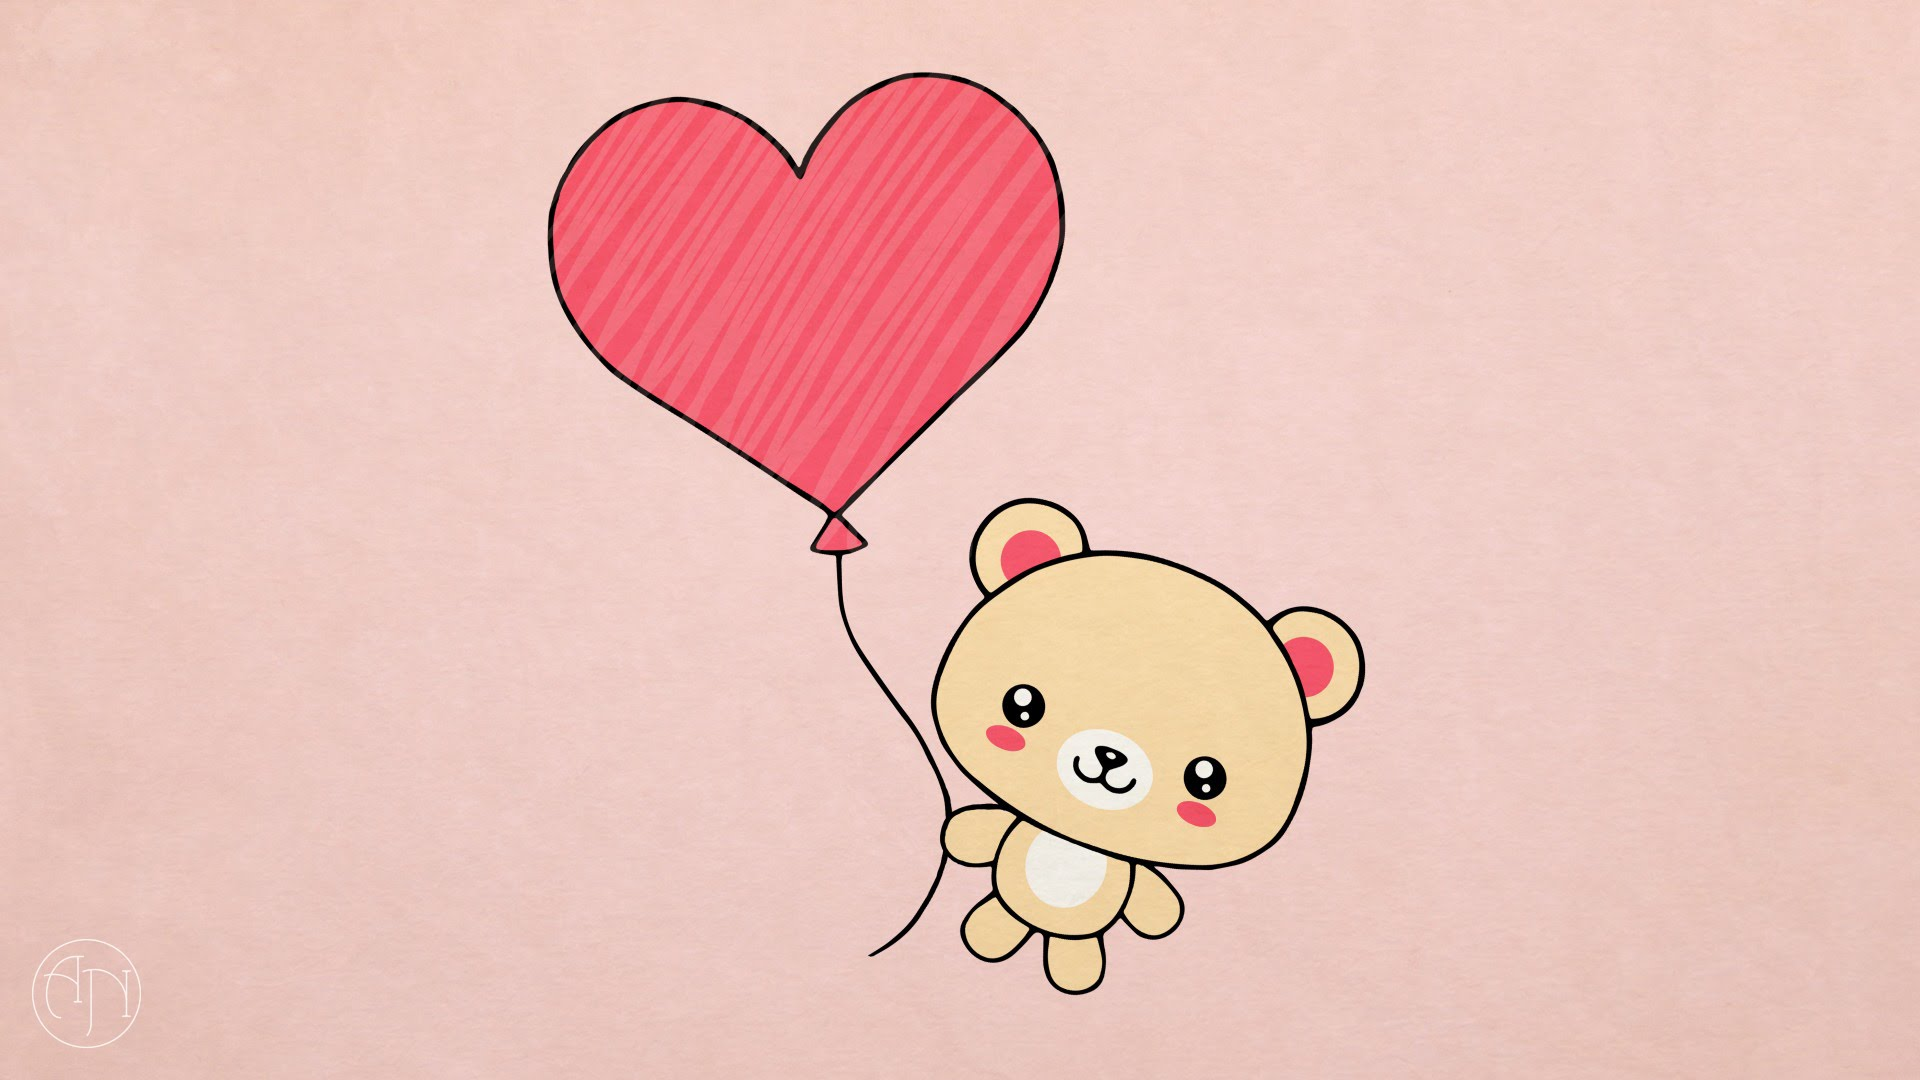 1920x1080 How To Draw] Valentine's Day Present Teddy Bear With Heart